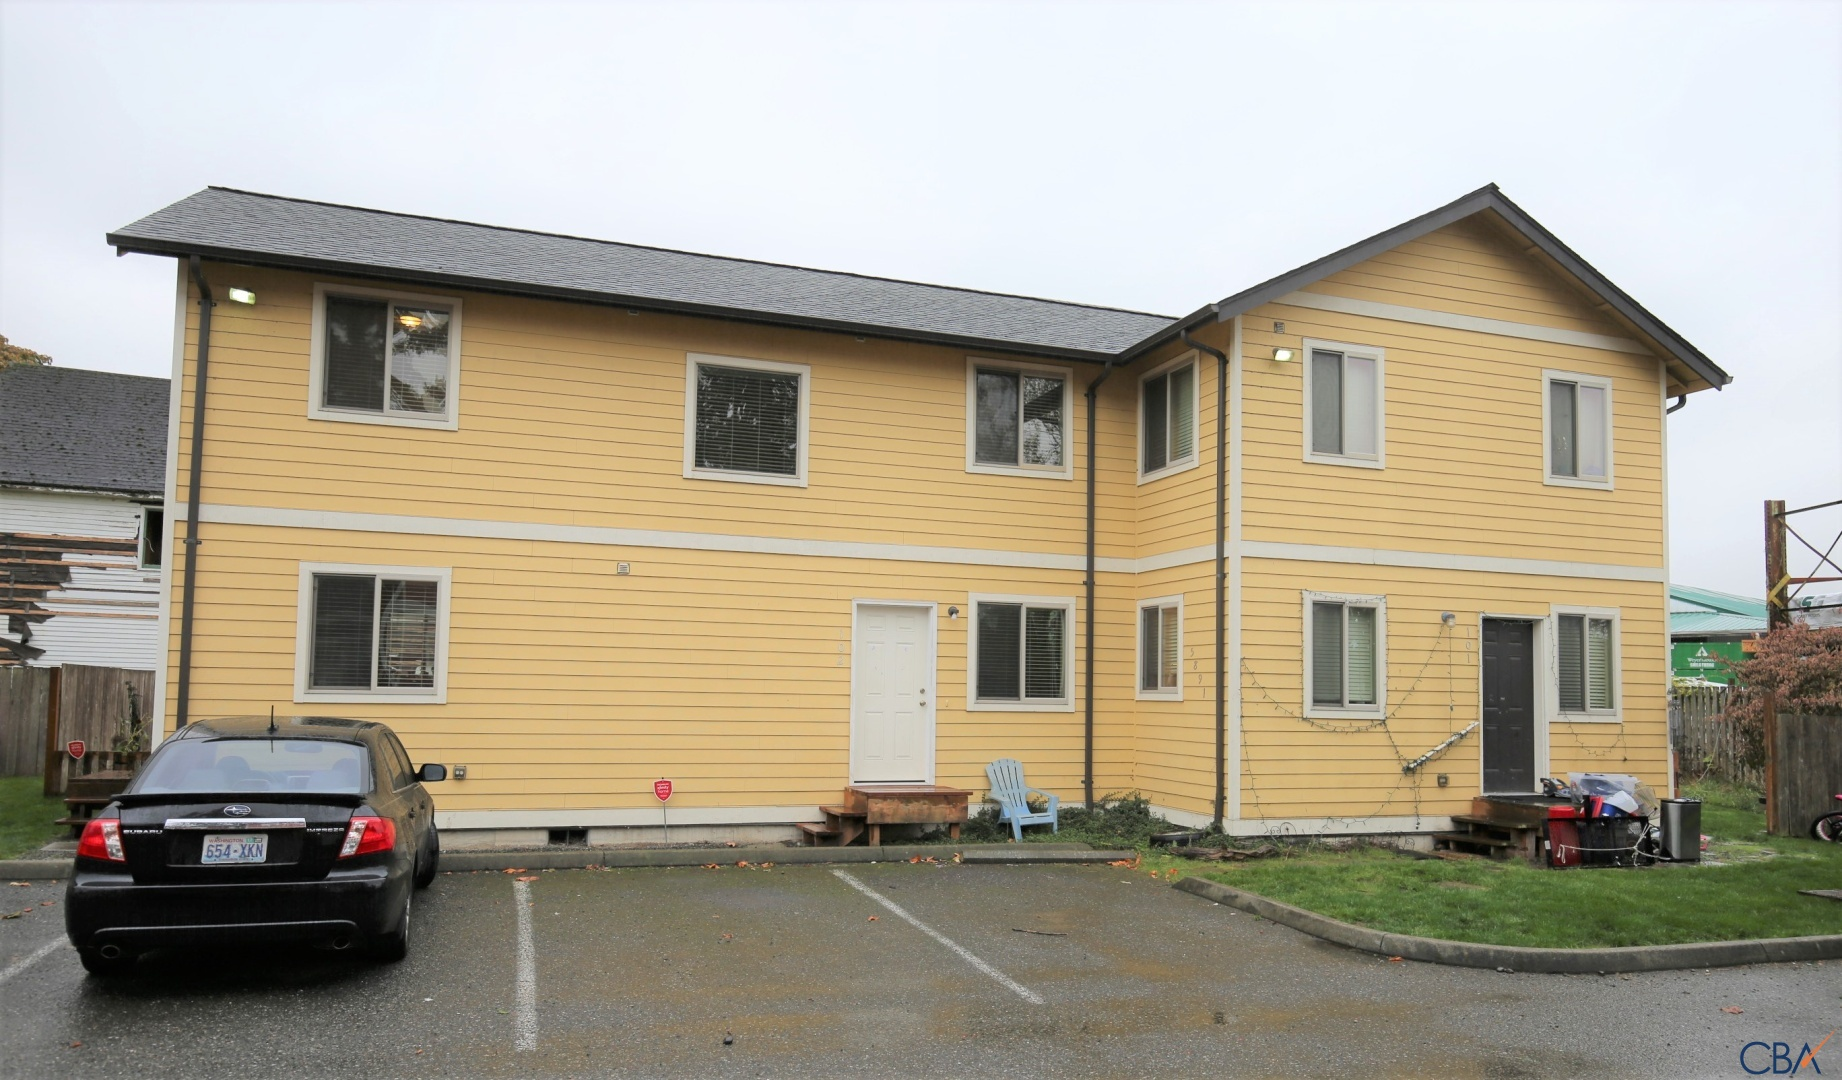 Primary Listing Image for MLS#: 619618